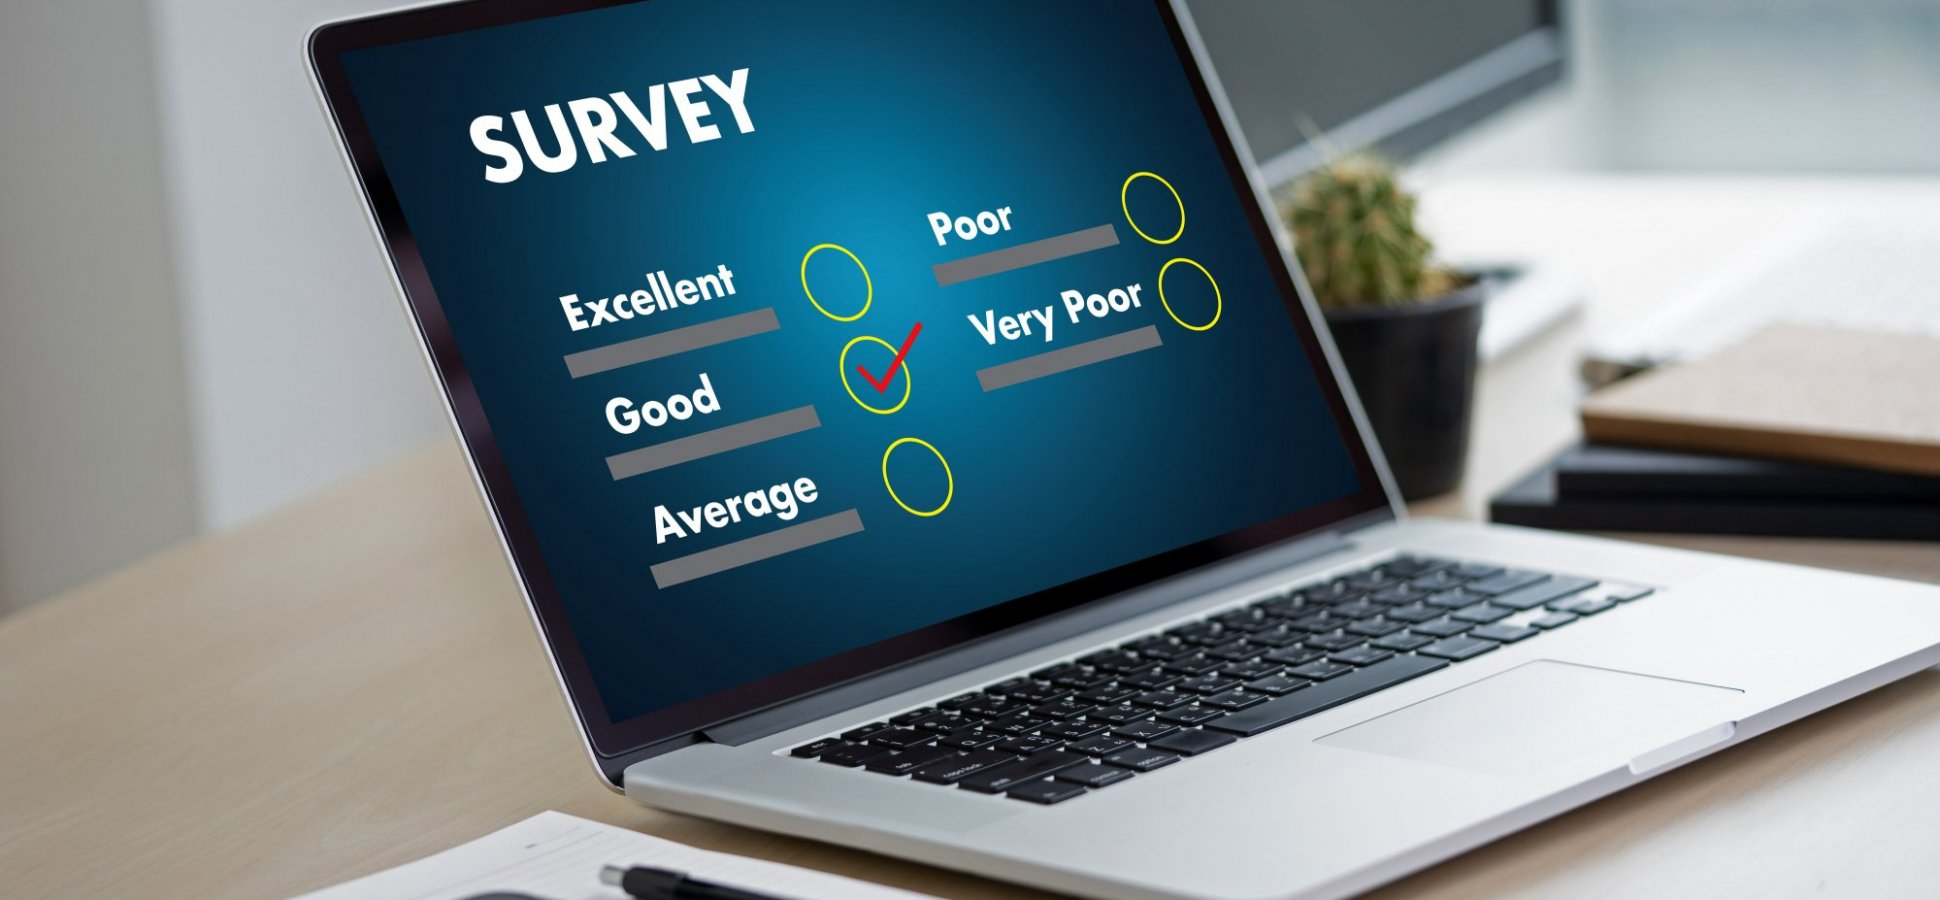 4 Tips for Getting the Most Out of Customer Survey Data